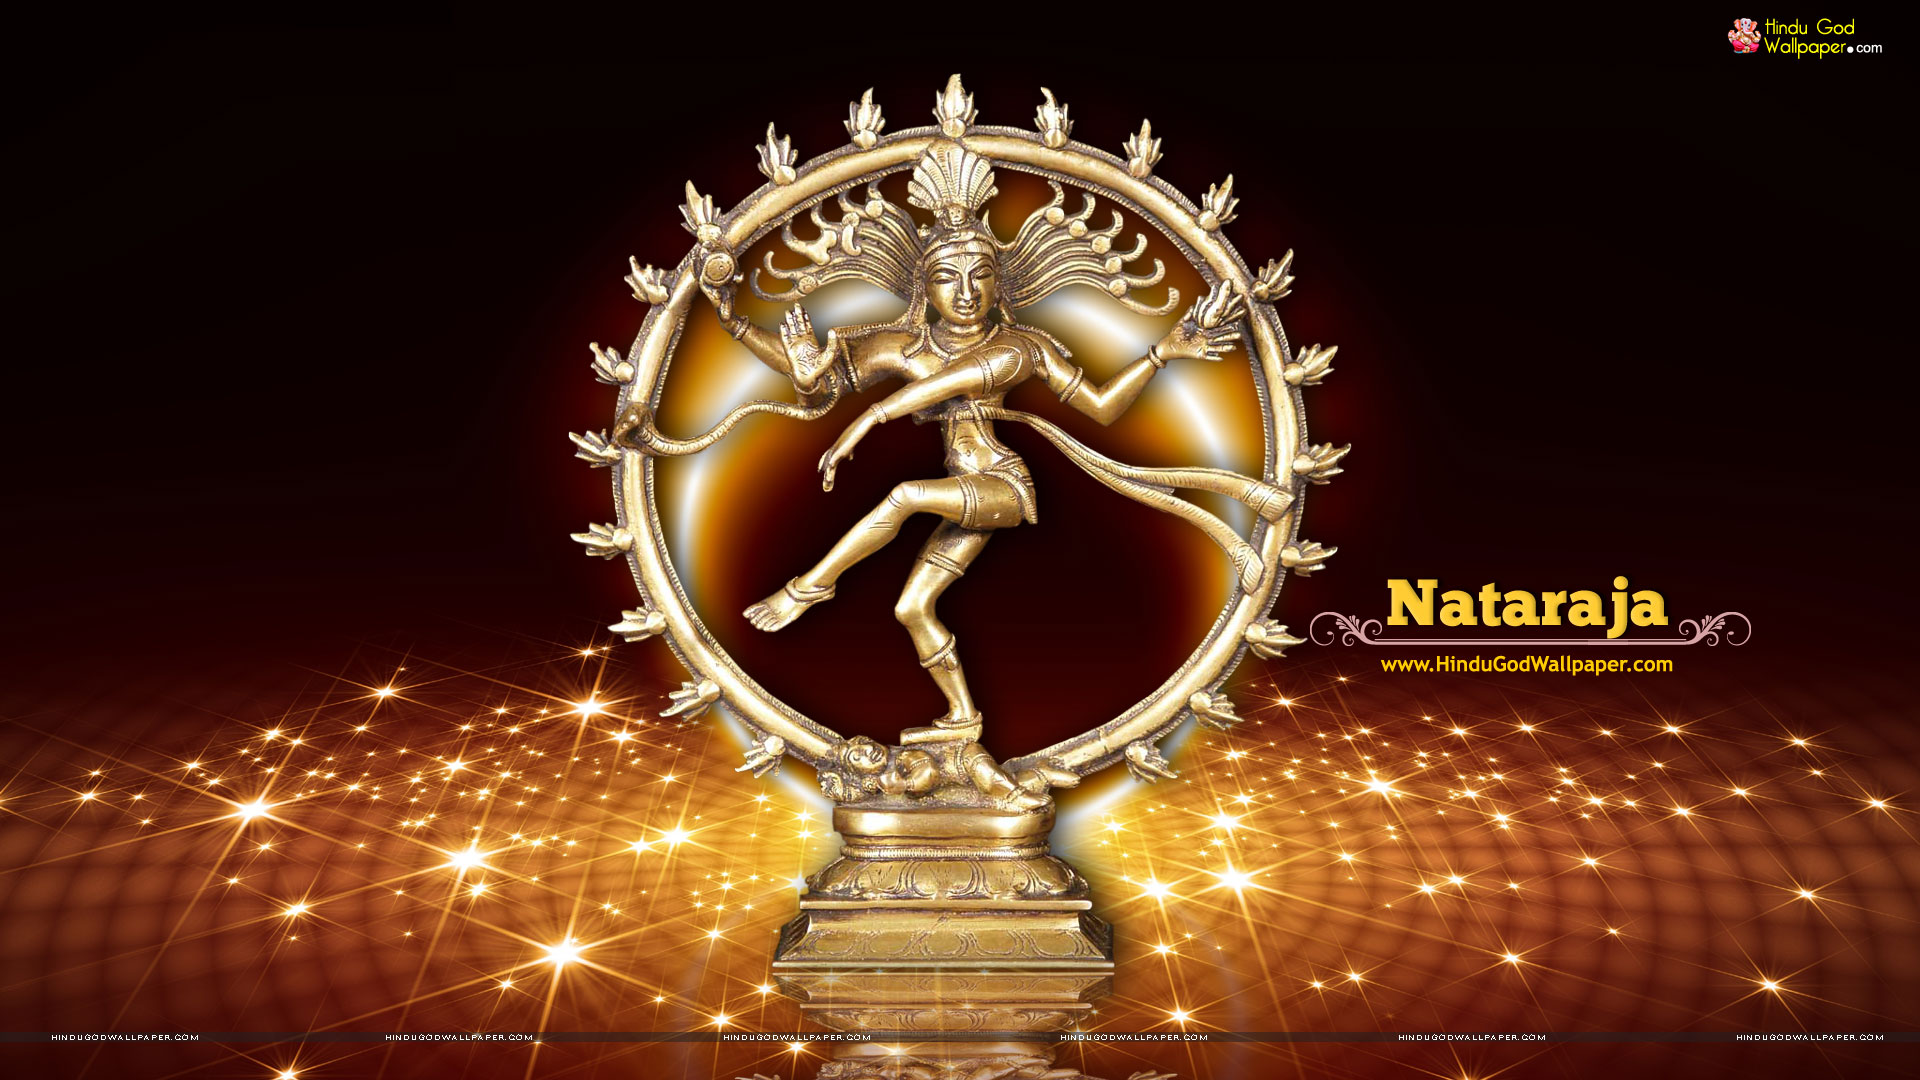 Download nataraja natraj wallpaperswide